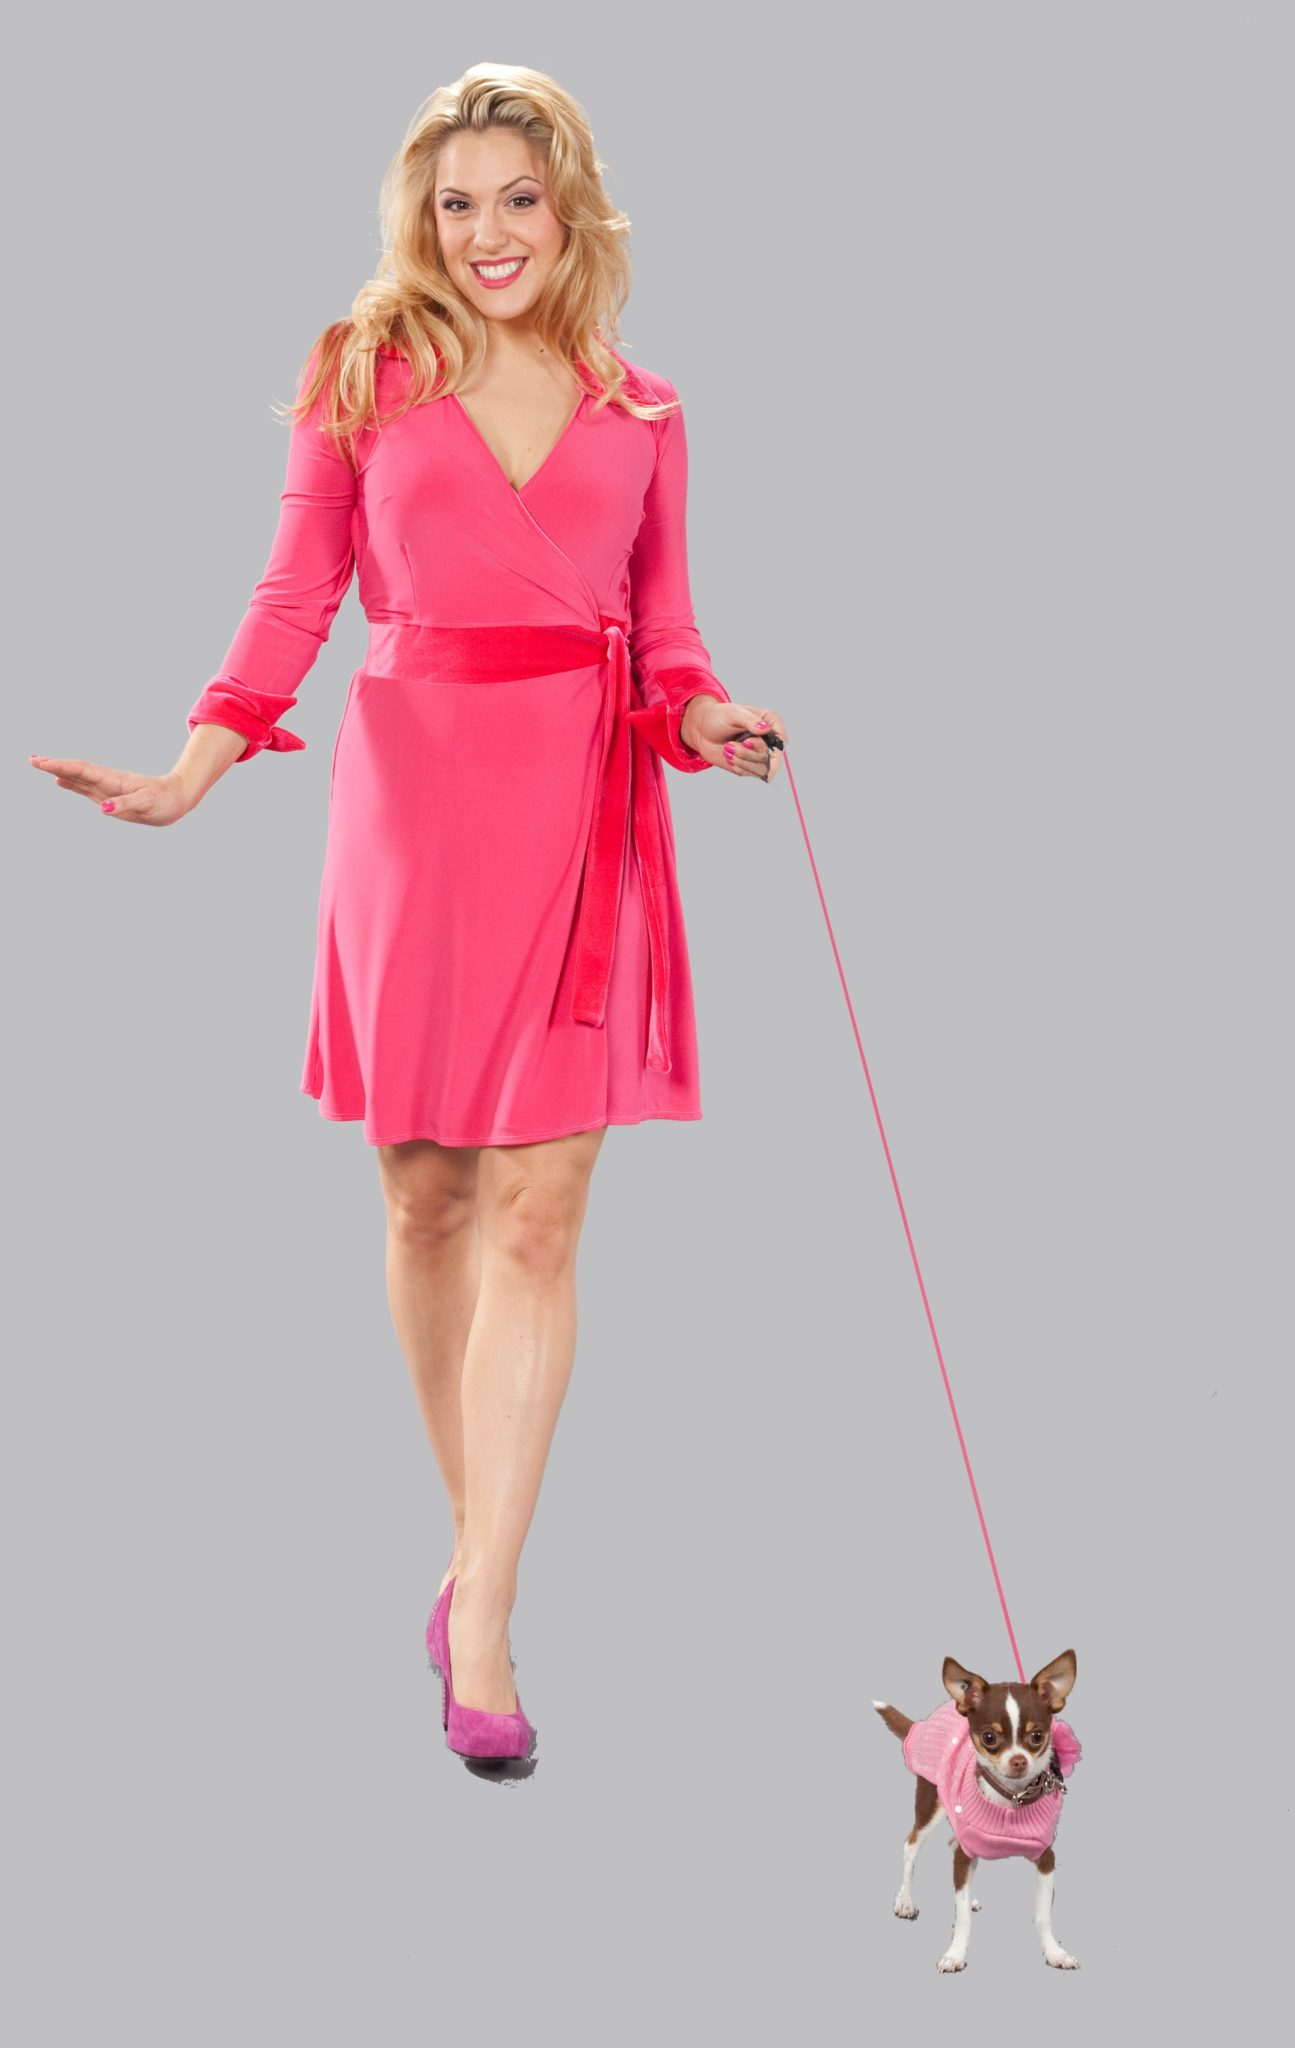 Legally Blonde Poster 63